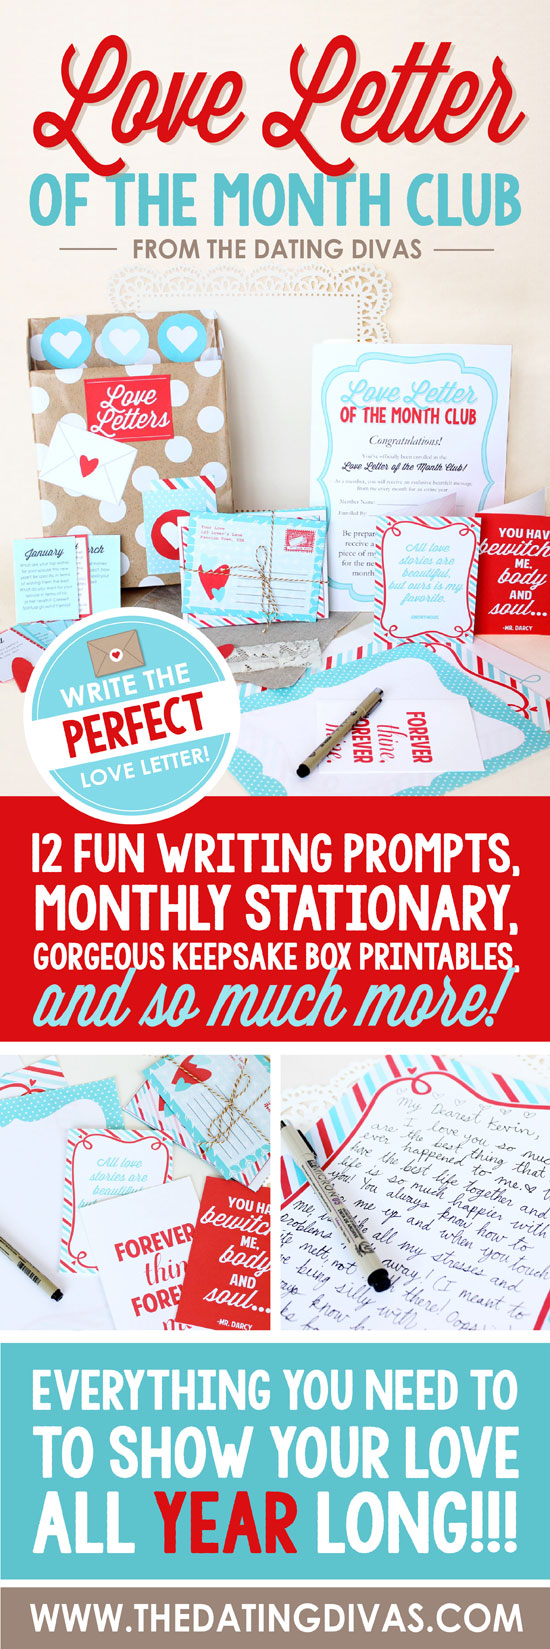 Love-Letter-Kit-Pinterest